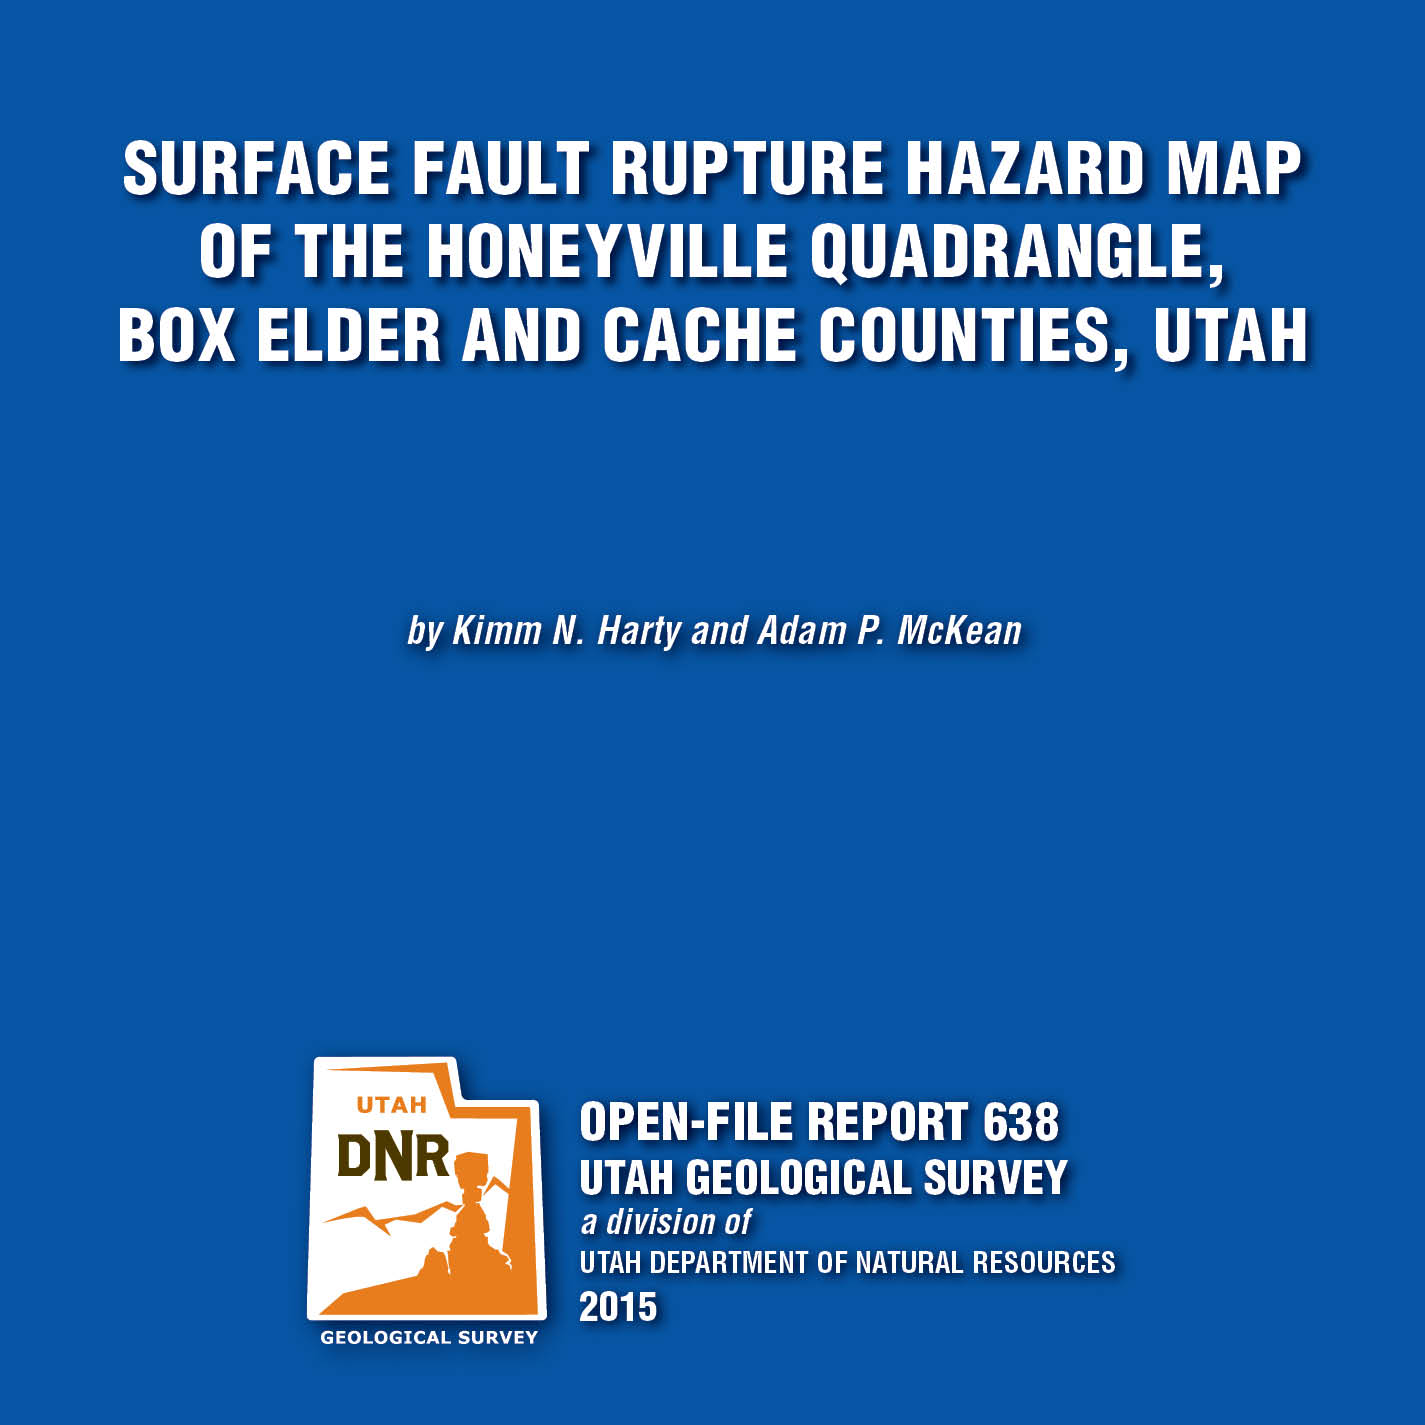 OFR-638 Insert, Open File Repot, Honeyville Quadrangle